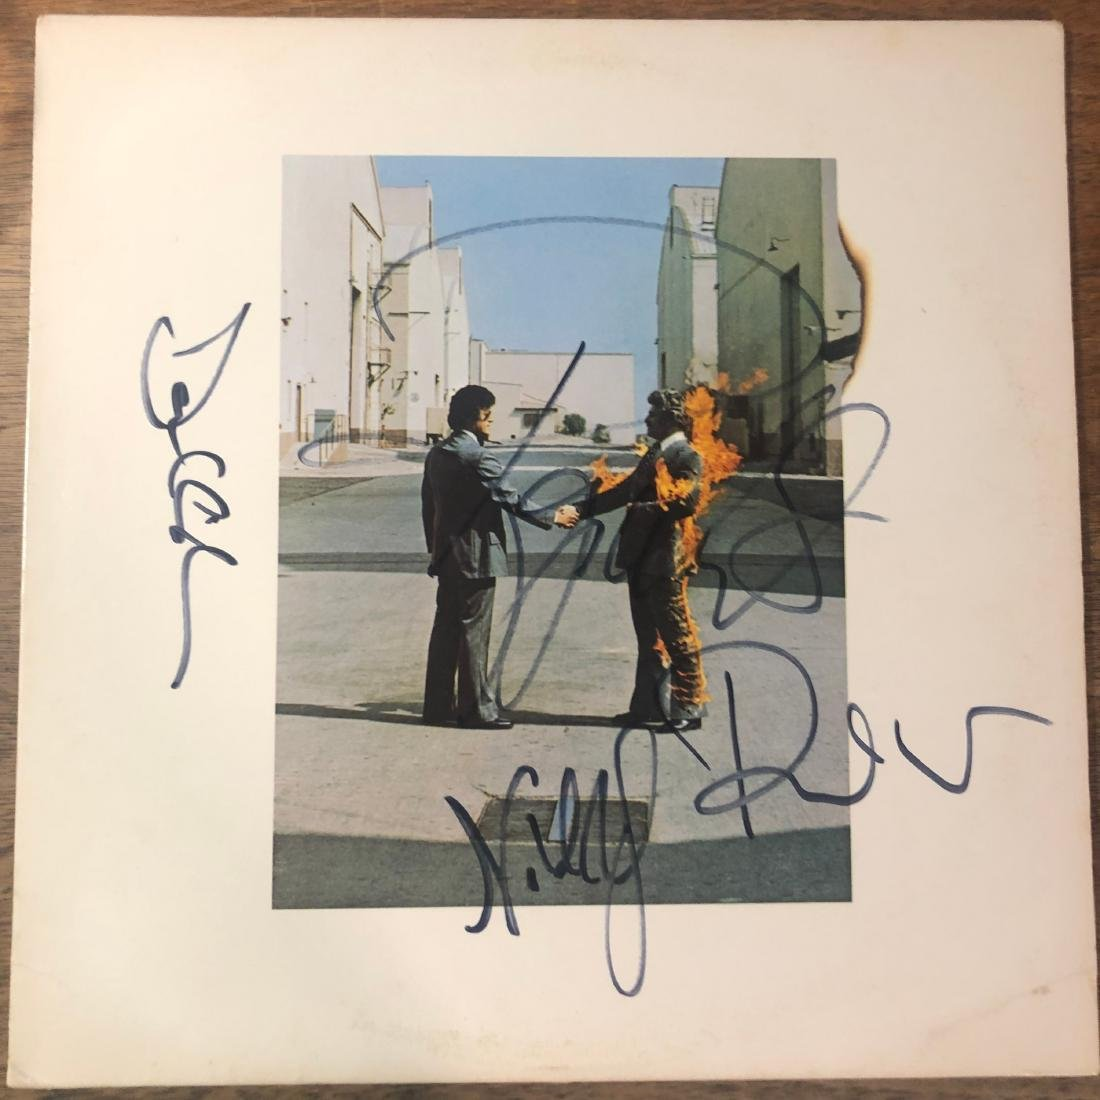 Signed Pink Floyd Wish You Were Here Album - Dec 22, 2018